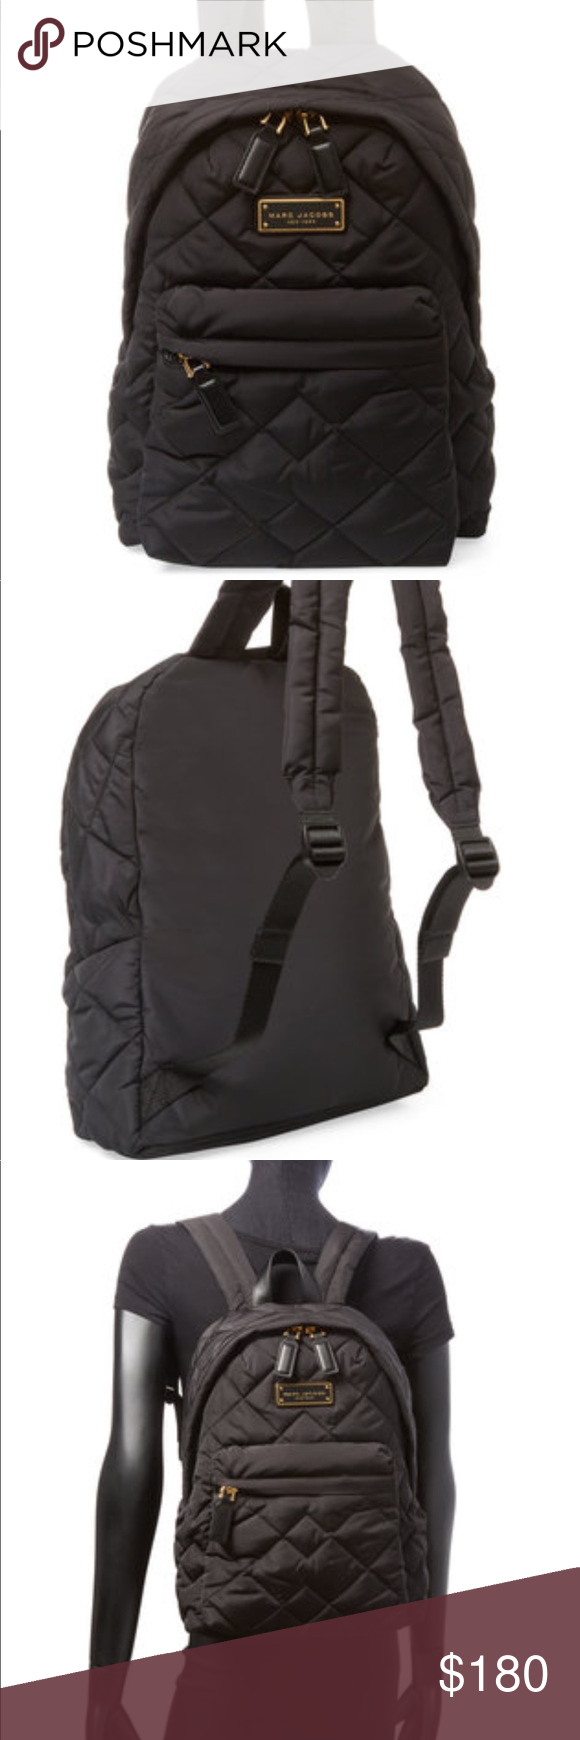 c603670e865 Quilted Nylon Backpack Marc Jacobs- Fenix Toulouse Handball